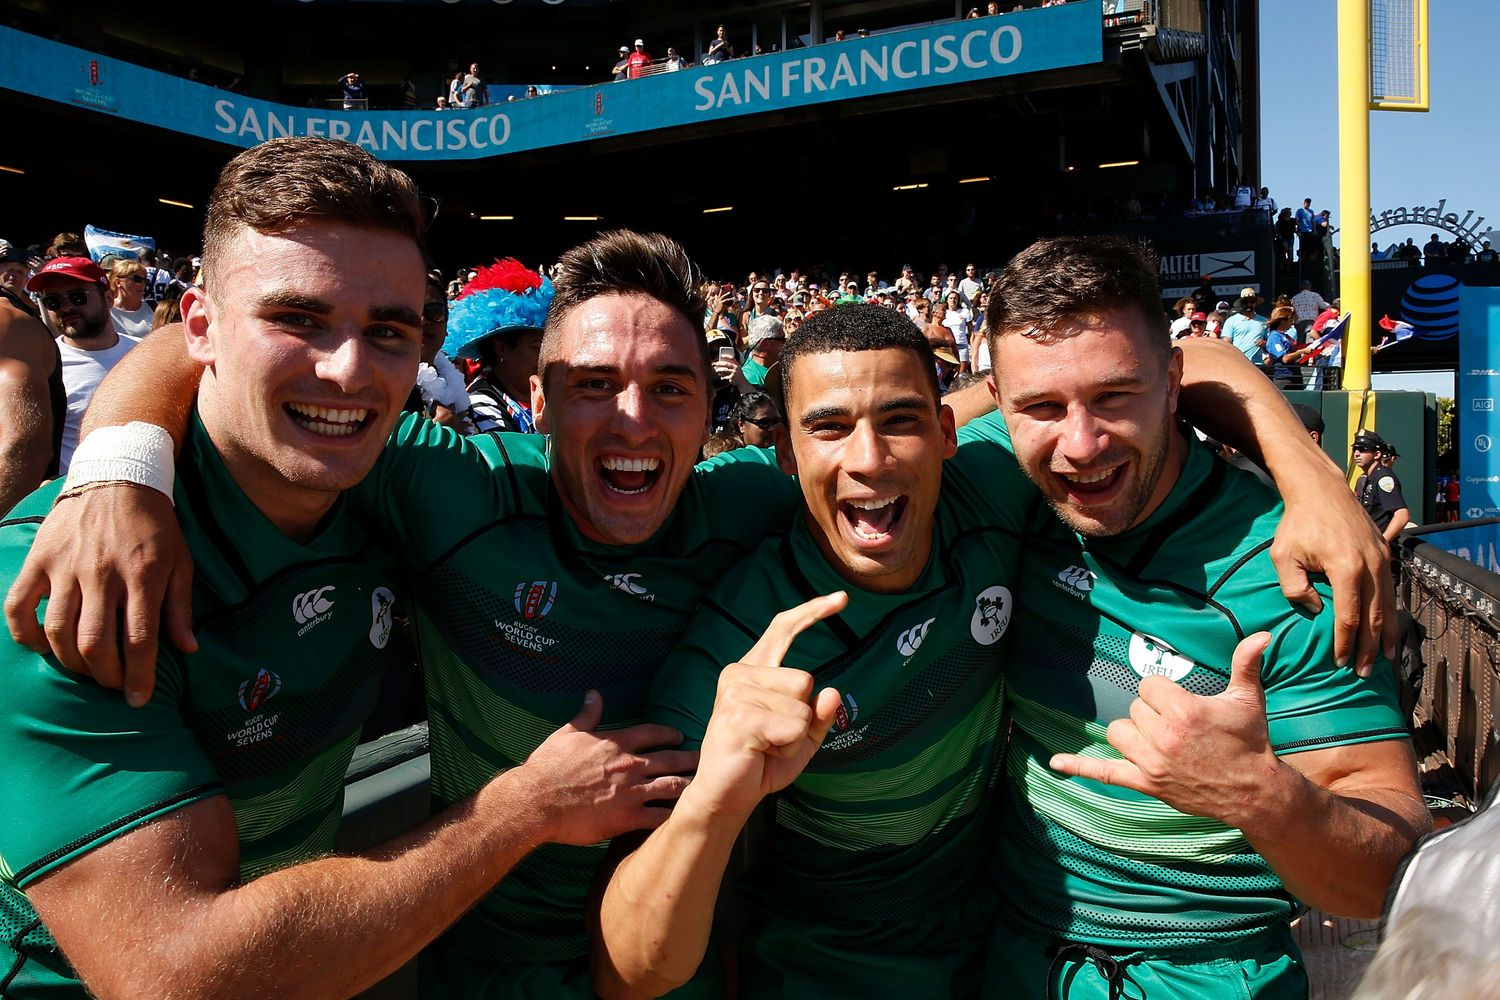 Rugby World Cup Sevens 2018 - memories of San Francisco